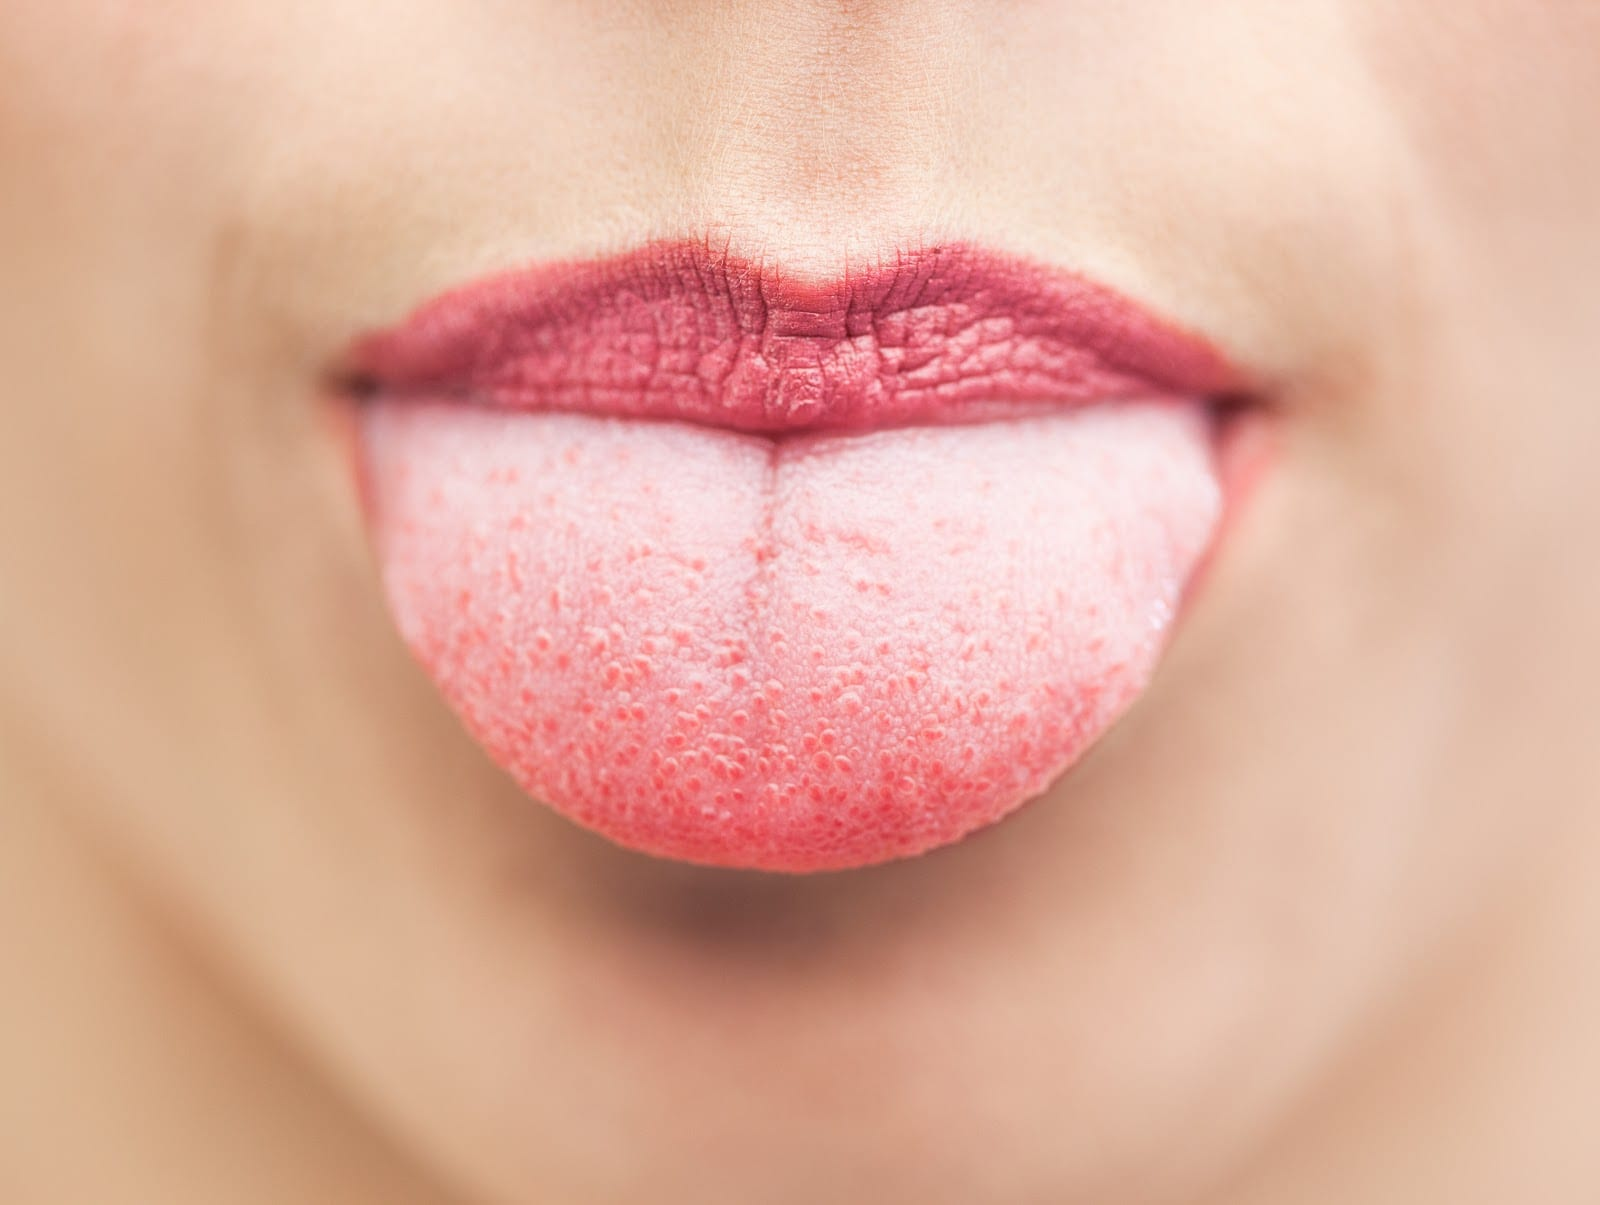 The tongue gives us many important clues about our health and signs of medical conditions and its importance for holistic medicine.